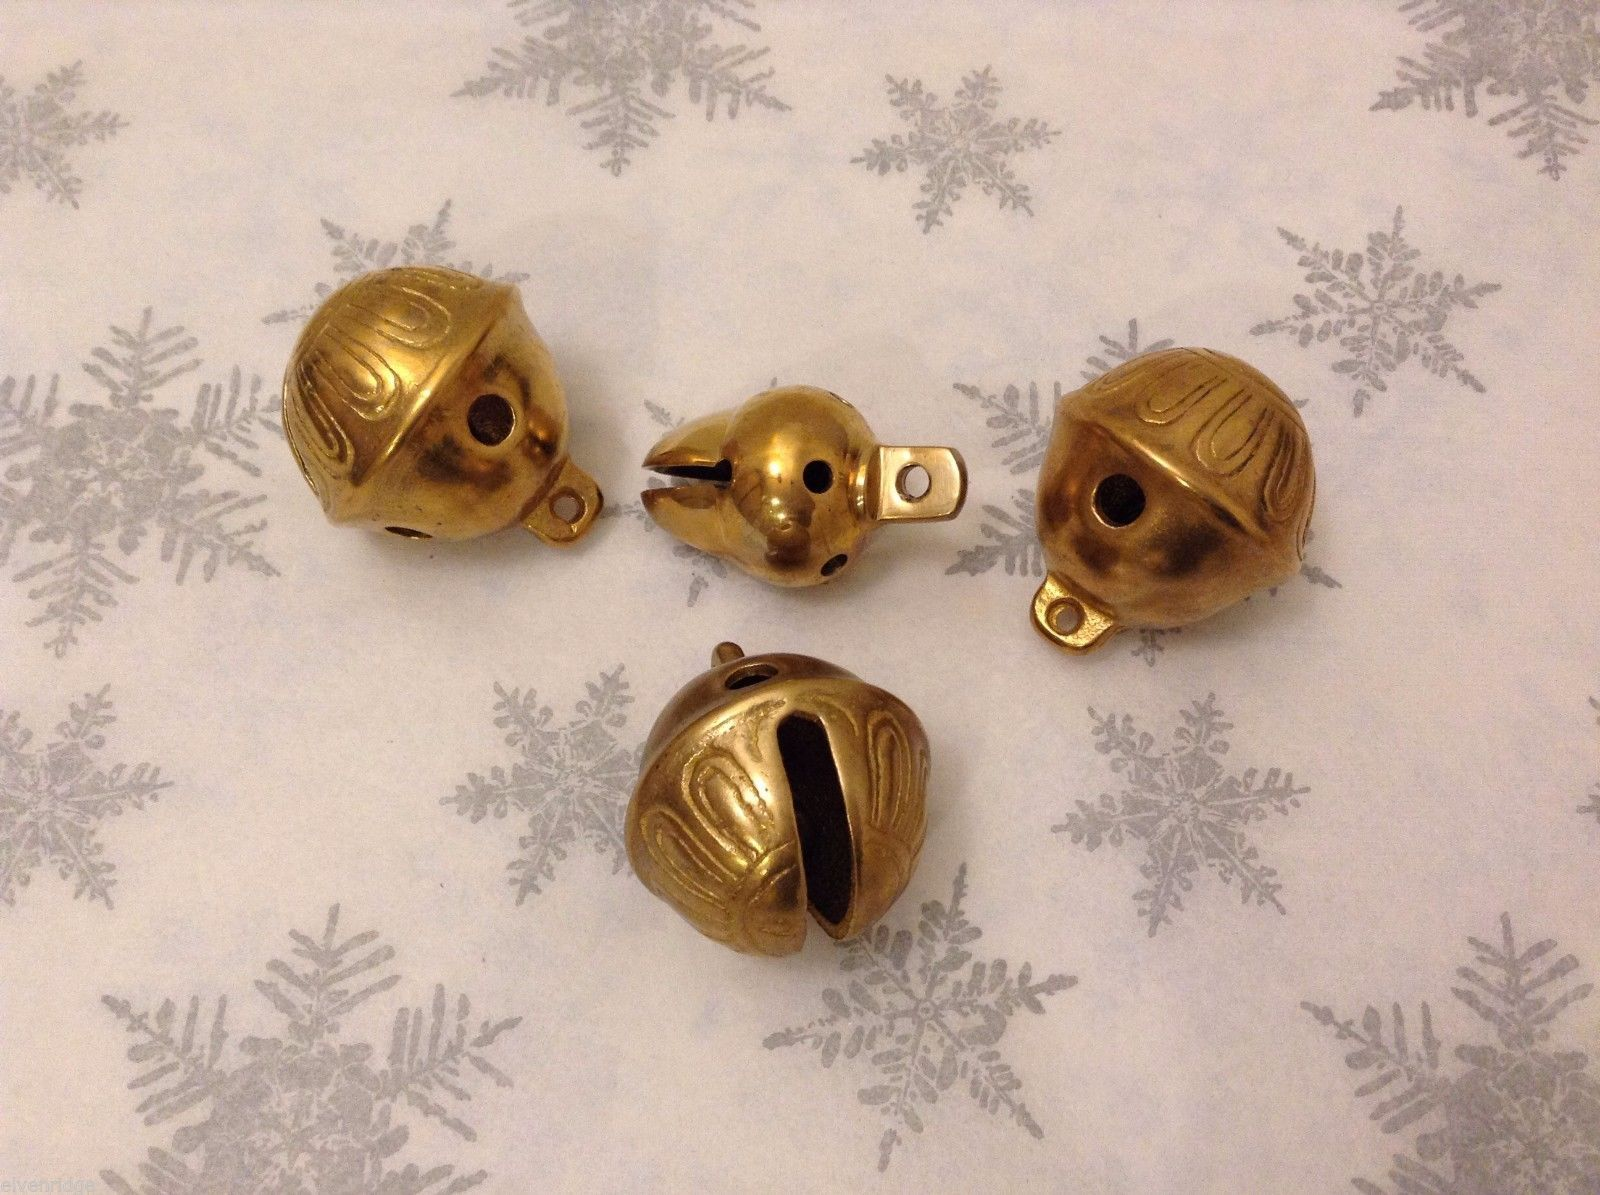 Polar Gold Brass Lot of 4 Santa Sleigh bells GREAT Christmas Morning surprise